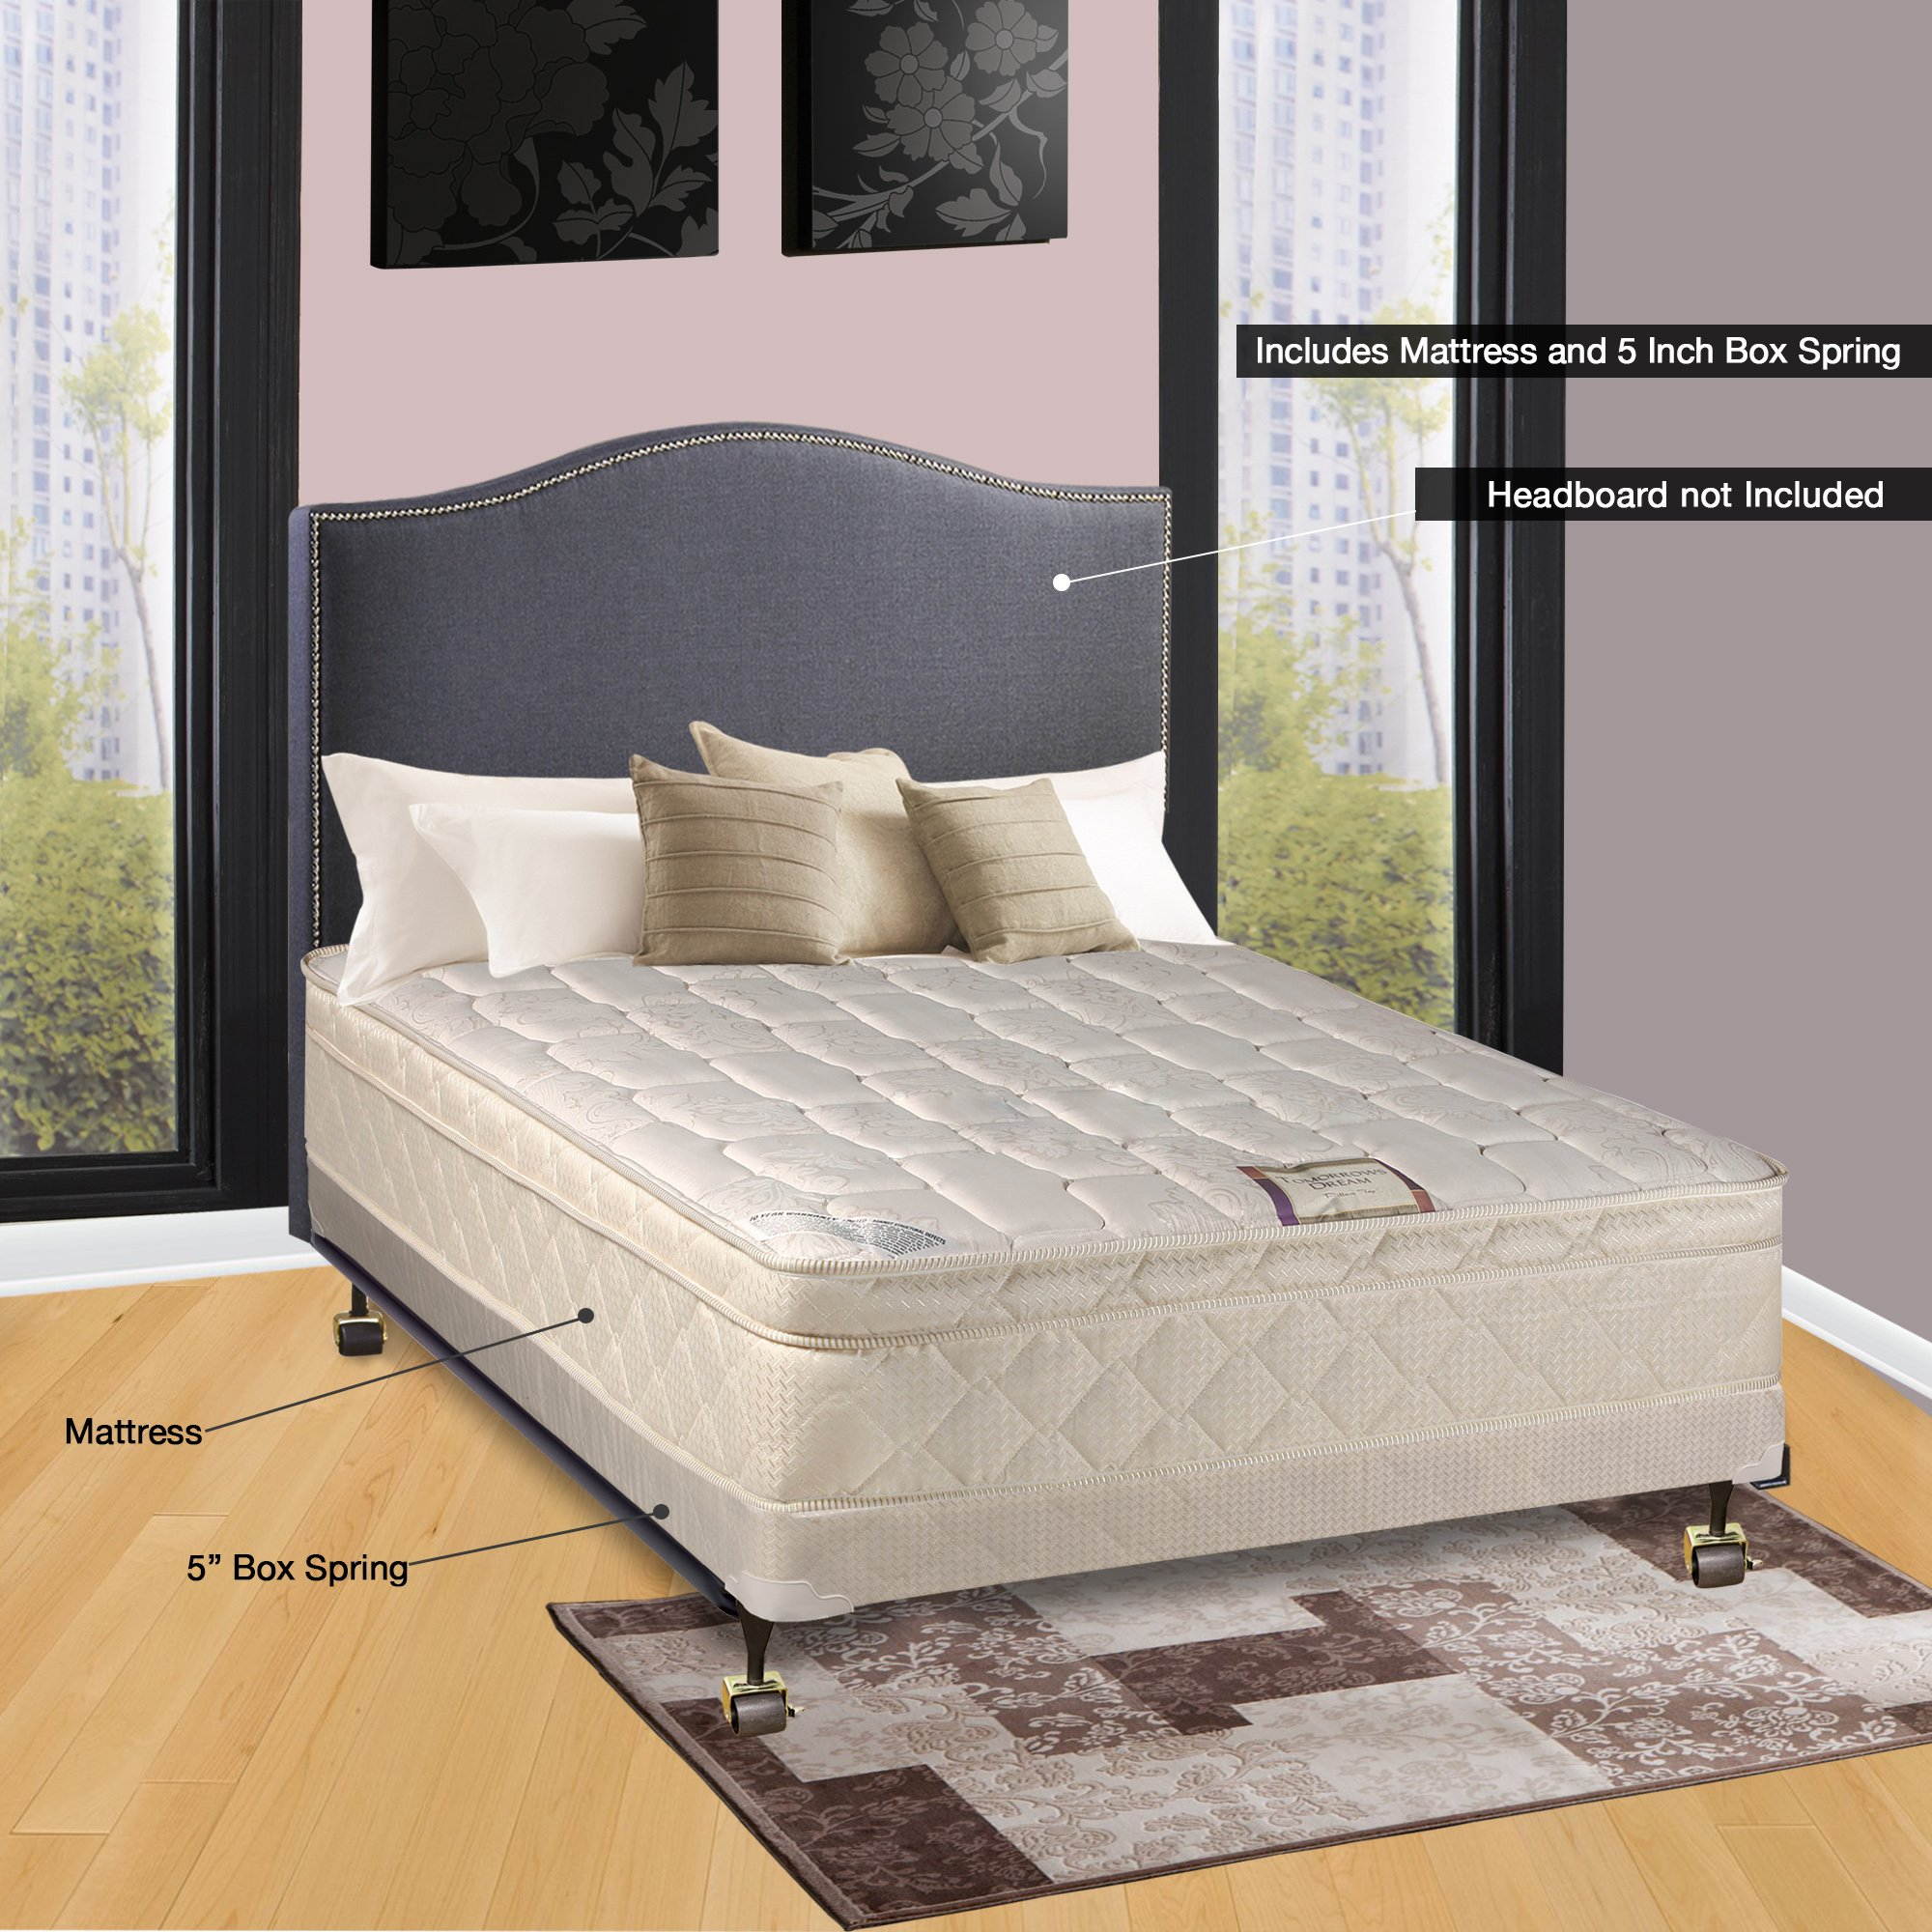 Spinal Solution, 10-Inch Plush Medium Eurotop Pillowtop Innerspring Mattress And 4-Inch Wood Traditional Box Spring/Foundation Set, Good For The Back, No Assembly Required, Full Size 74'' x 53''